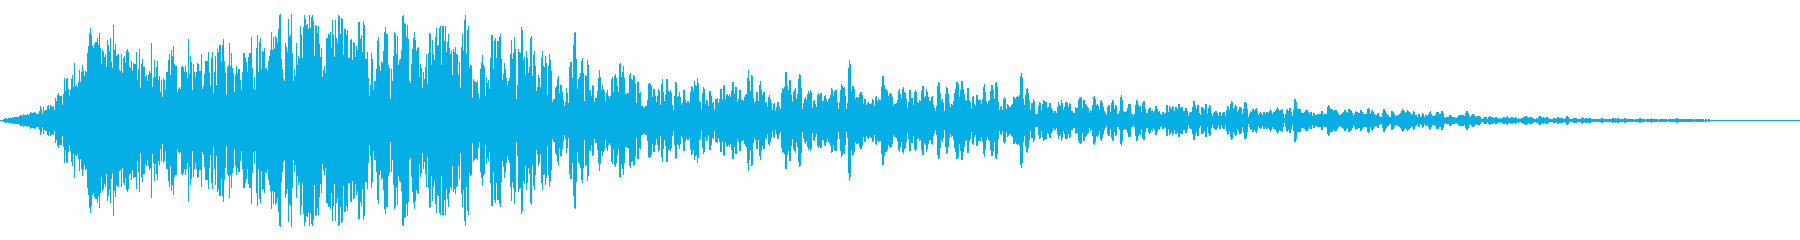 Impact sound (image of shock, gust)'s reproduced waveform